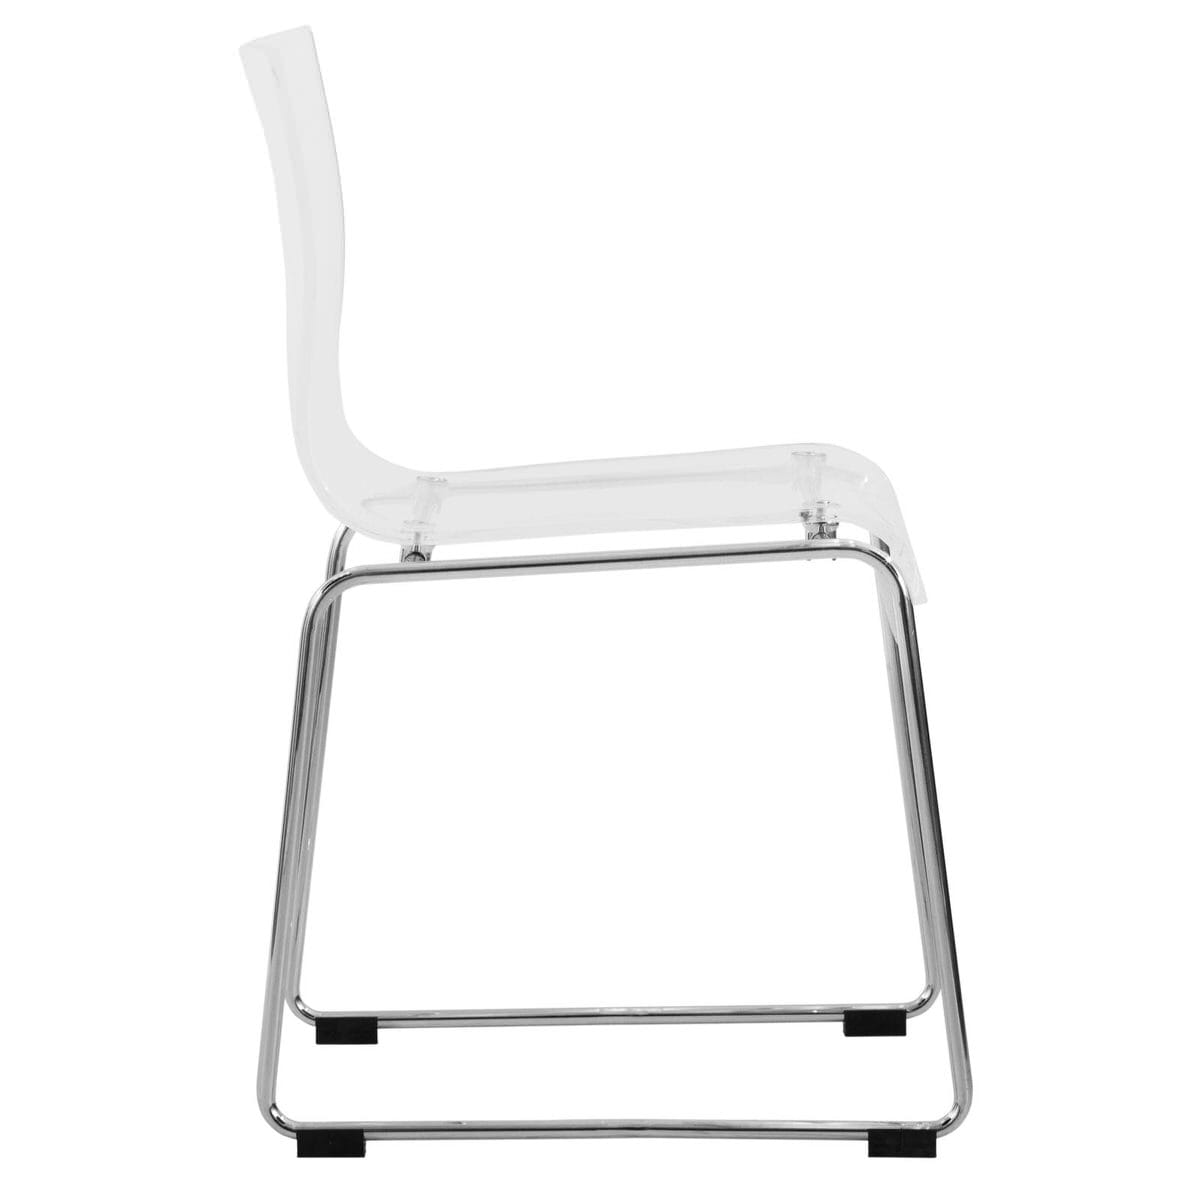 Brilliant Lima Modern Clear Acrylic Chair By Leisuremod Spiritservingveterans Wood Chair Design Ideas Spiritservingveteransorg